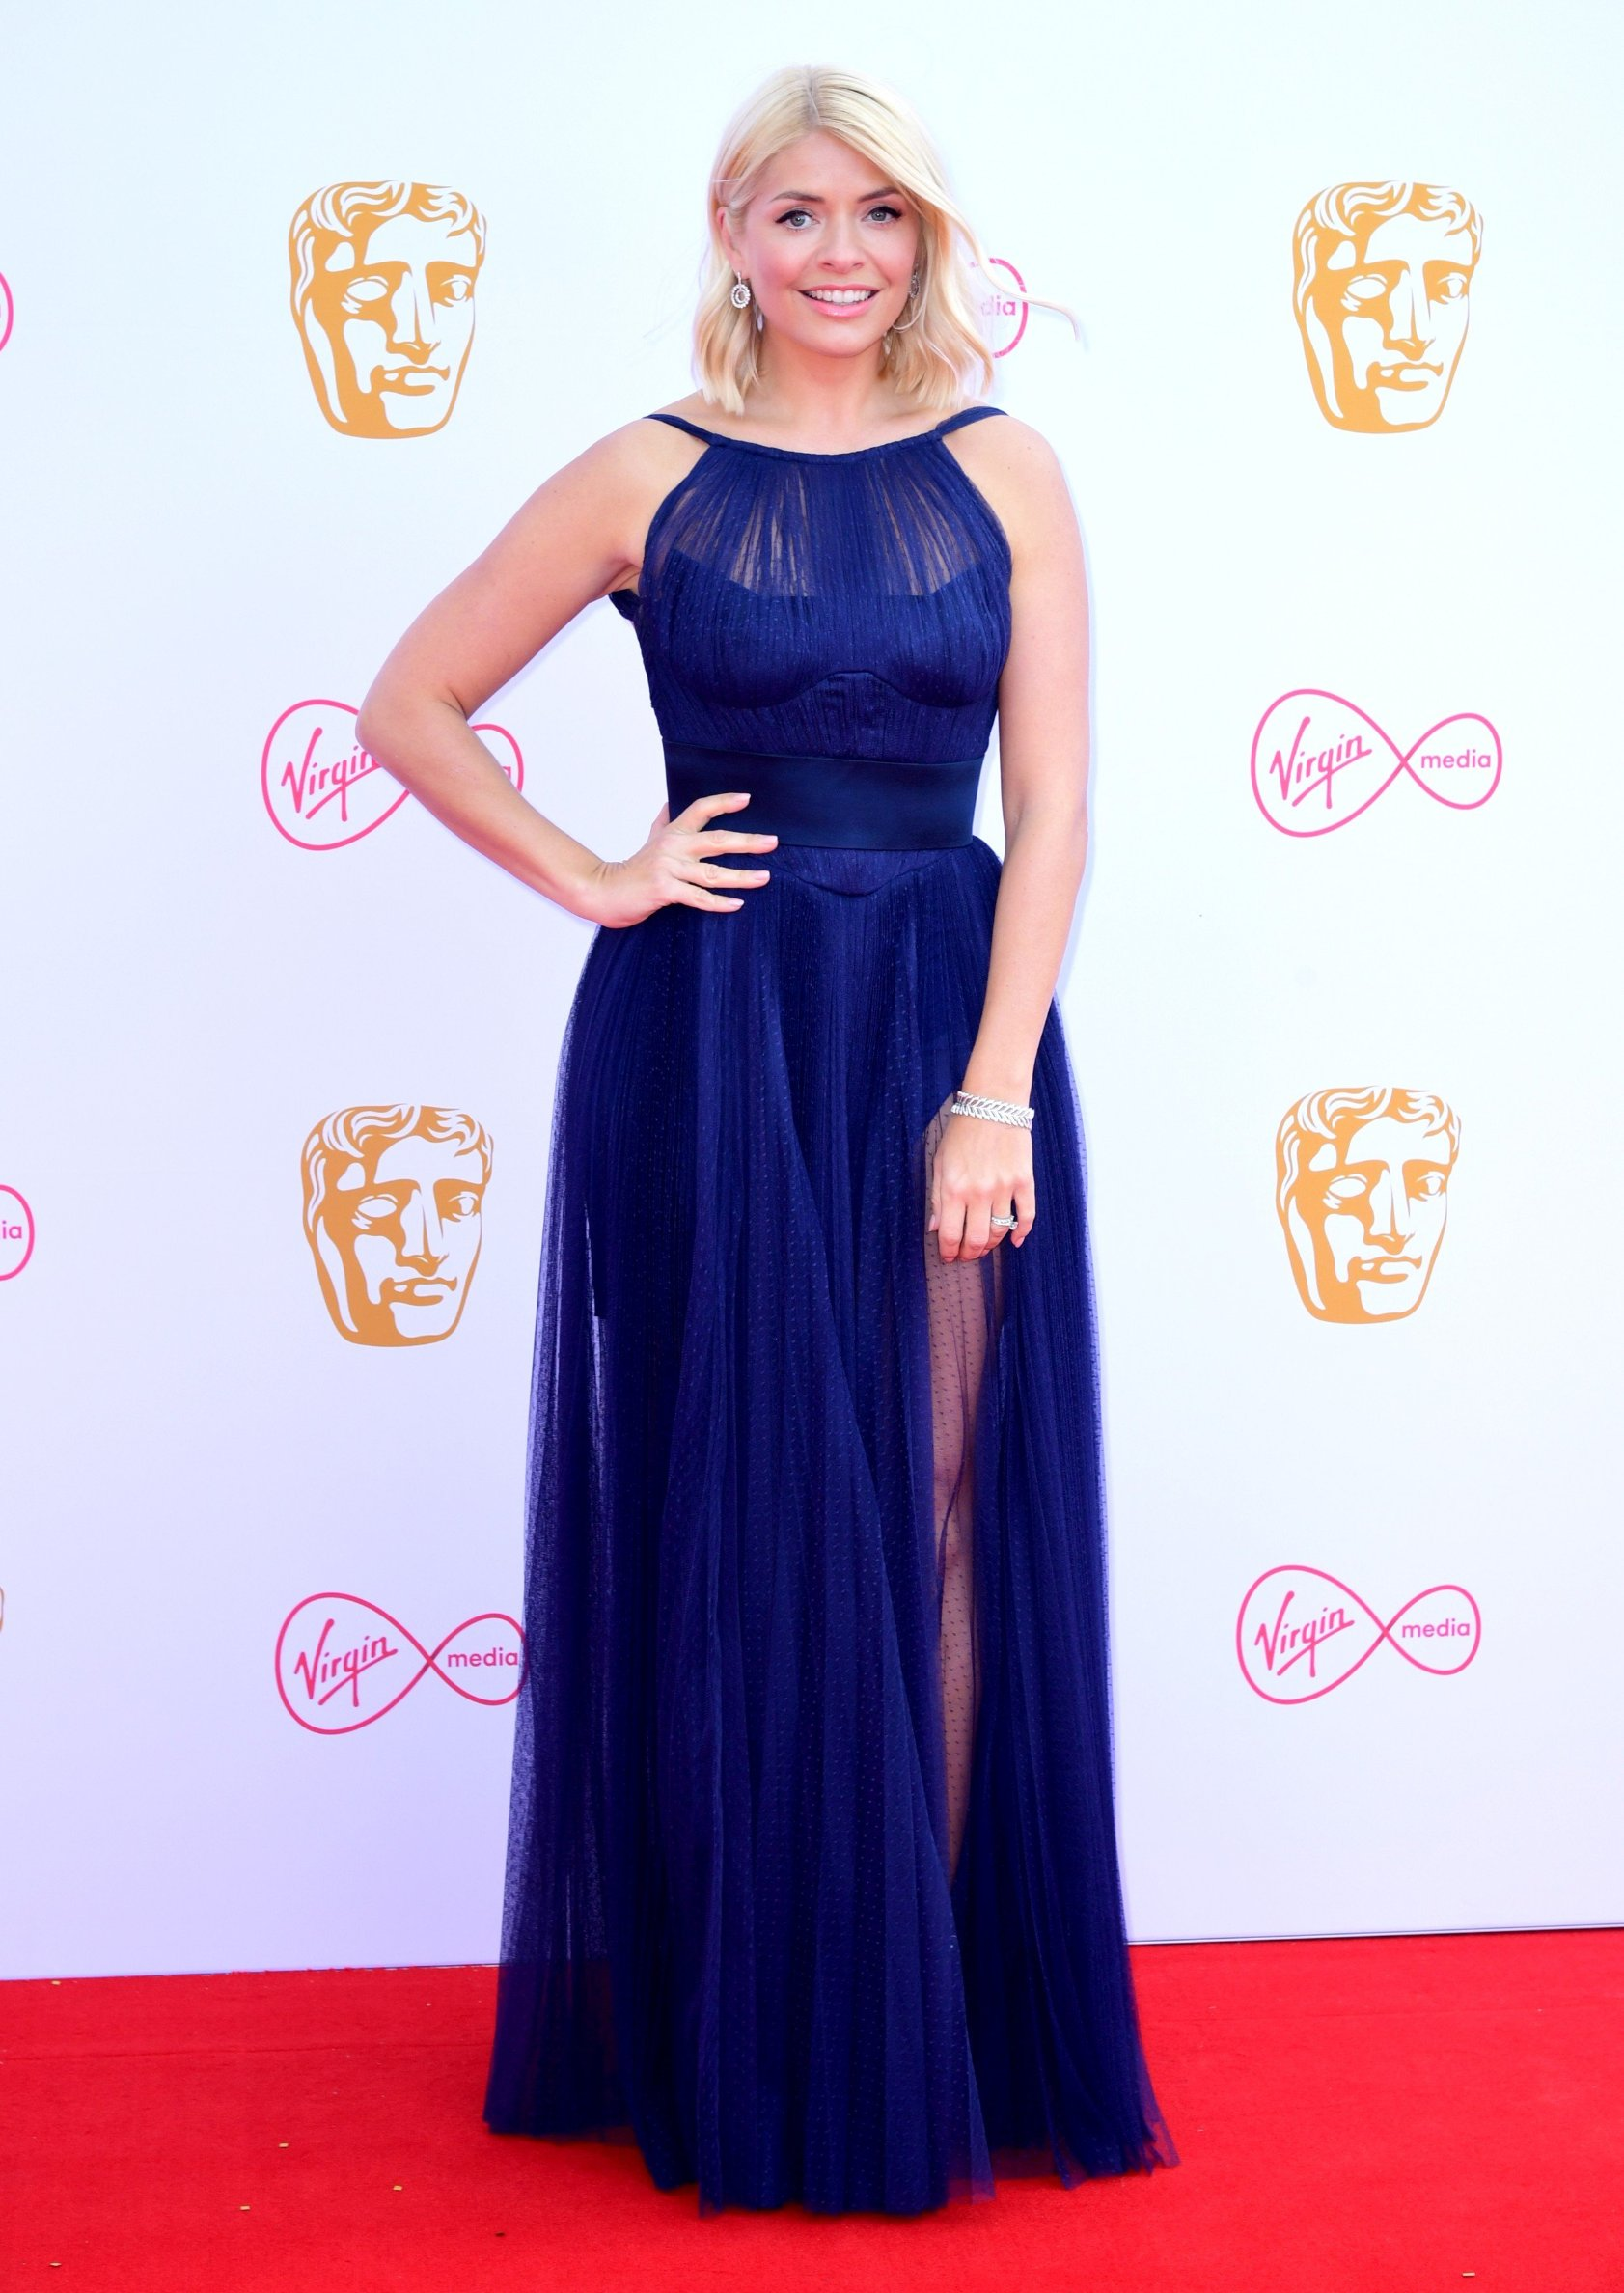 Holly Willoughby attending the Virgin Media BAFTA TV awards, held at the Royal Festival Hall in London., Image: 432681012, License: Rights-managed, Restrictions: , Model Release: no, Credit line: Profimedia, Press Association